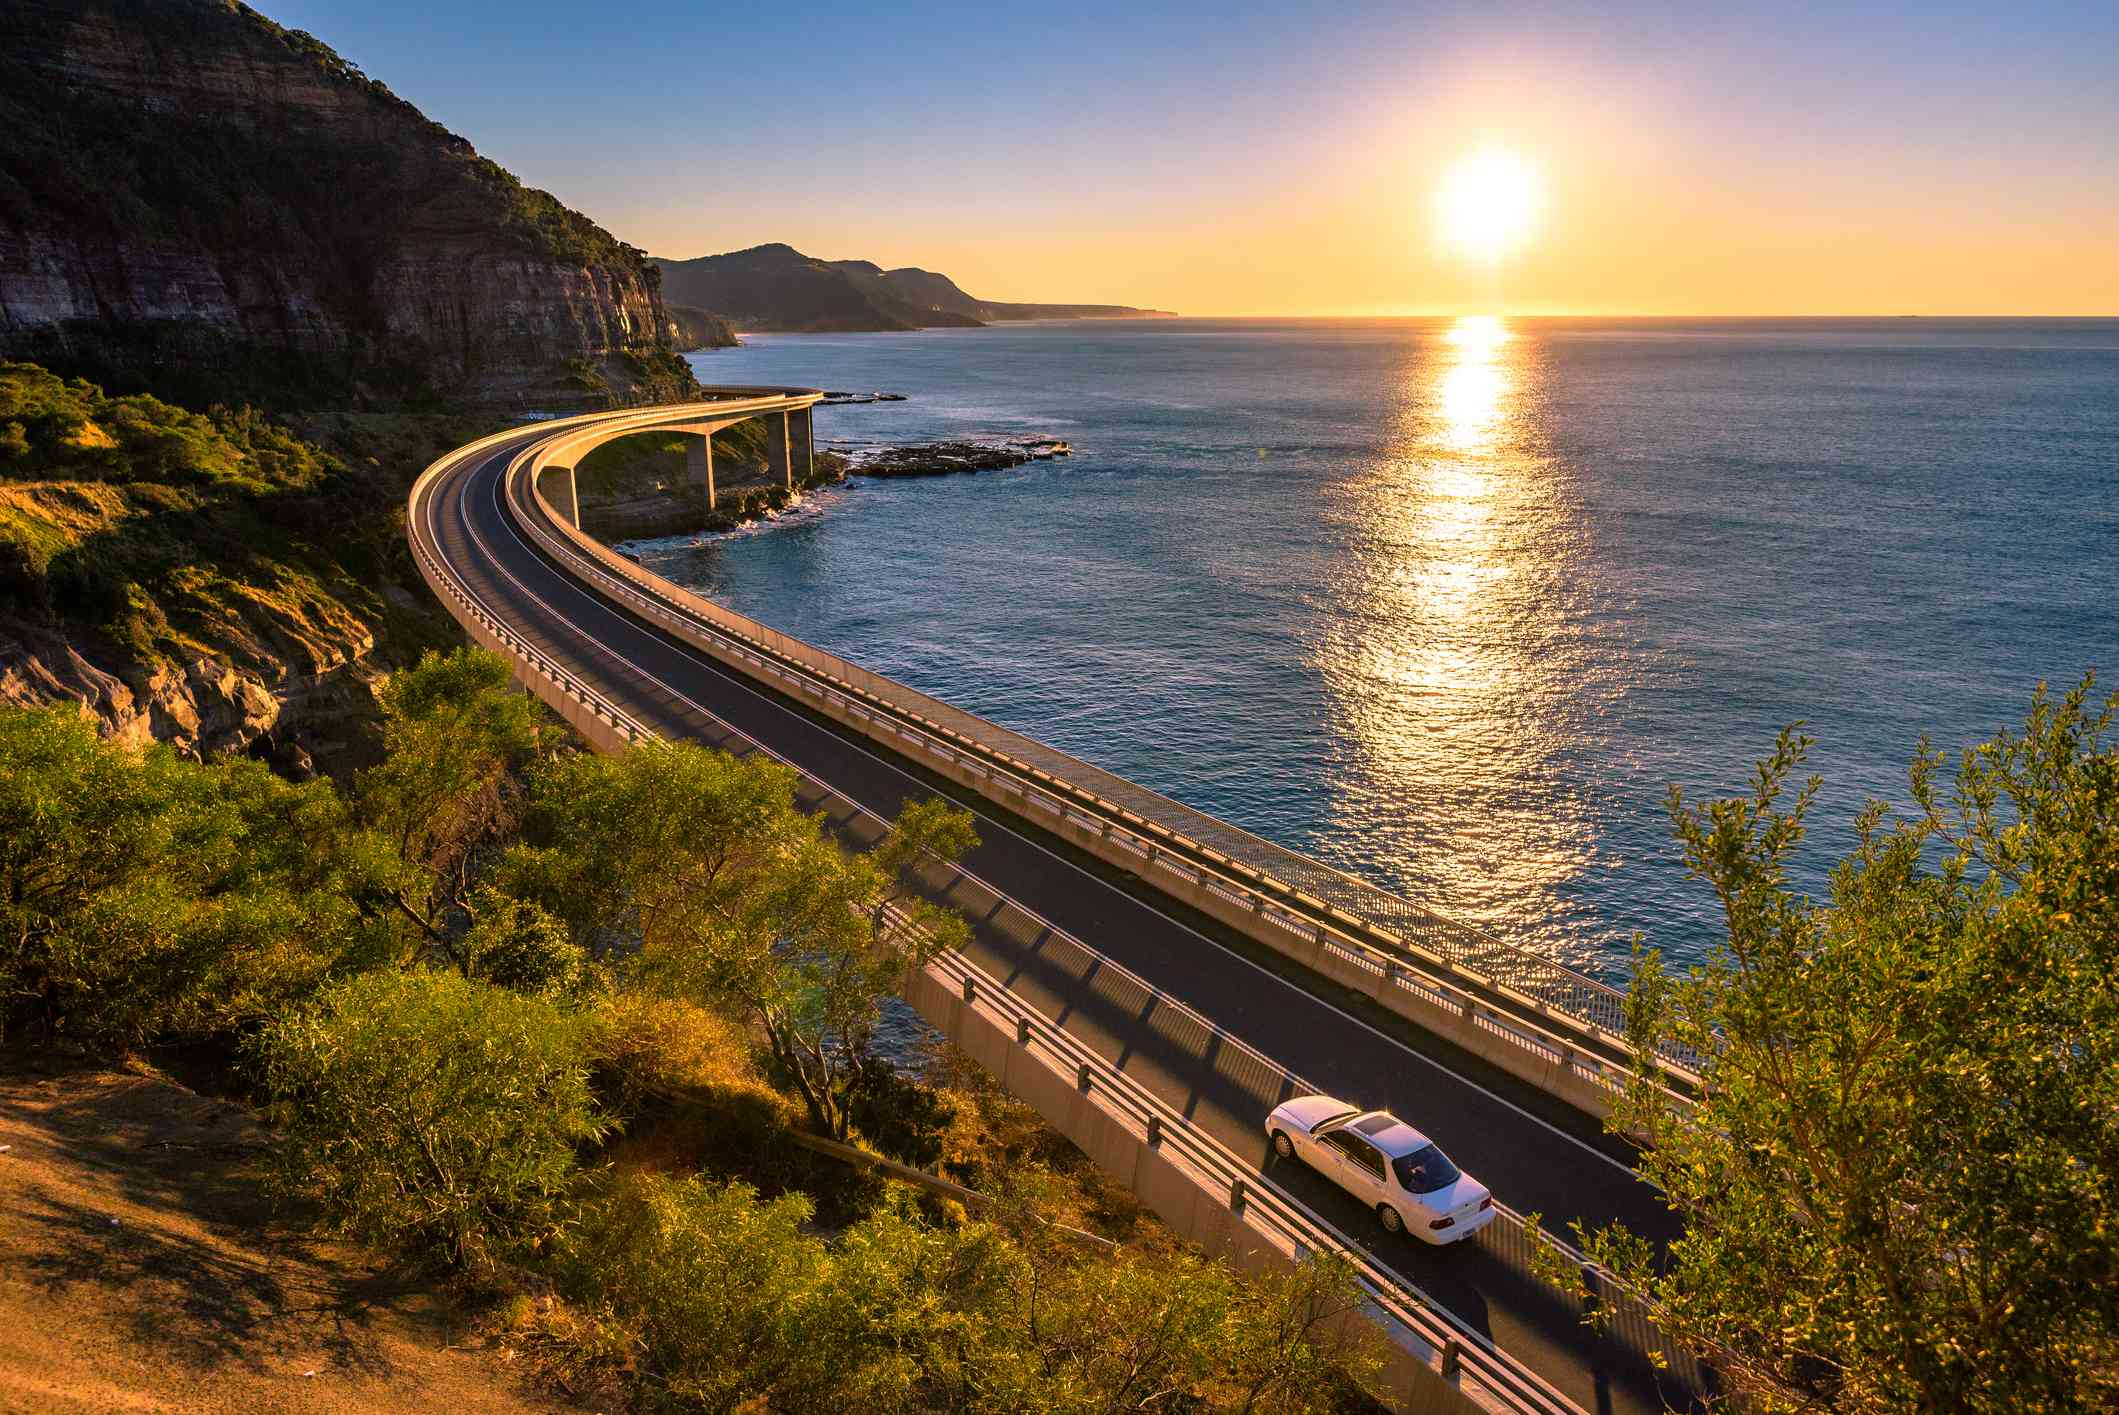 Sunrise over Wollongong Sea Cliff Bridge, New South Wales